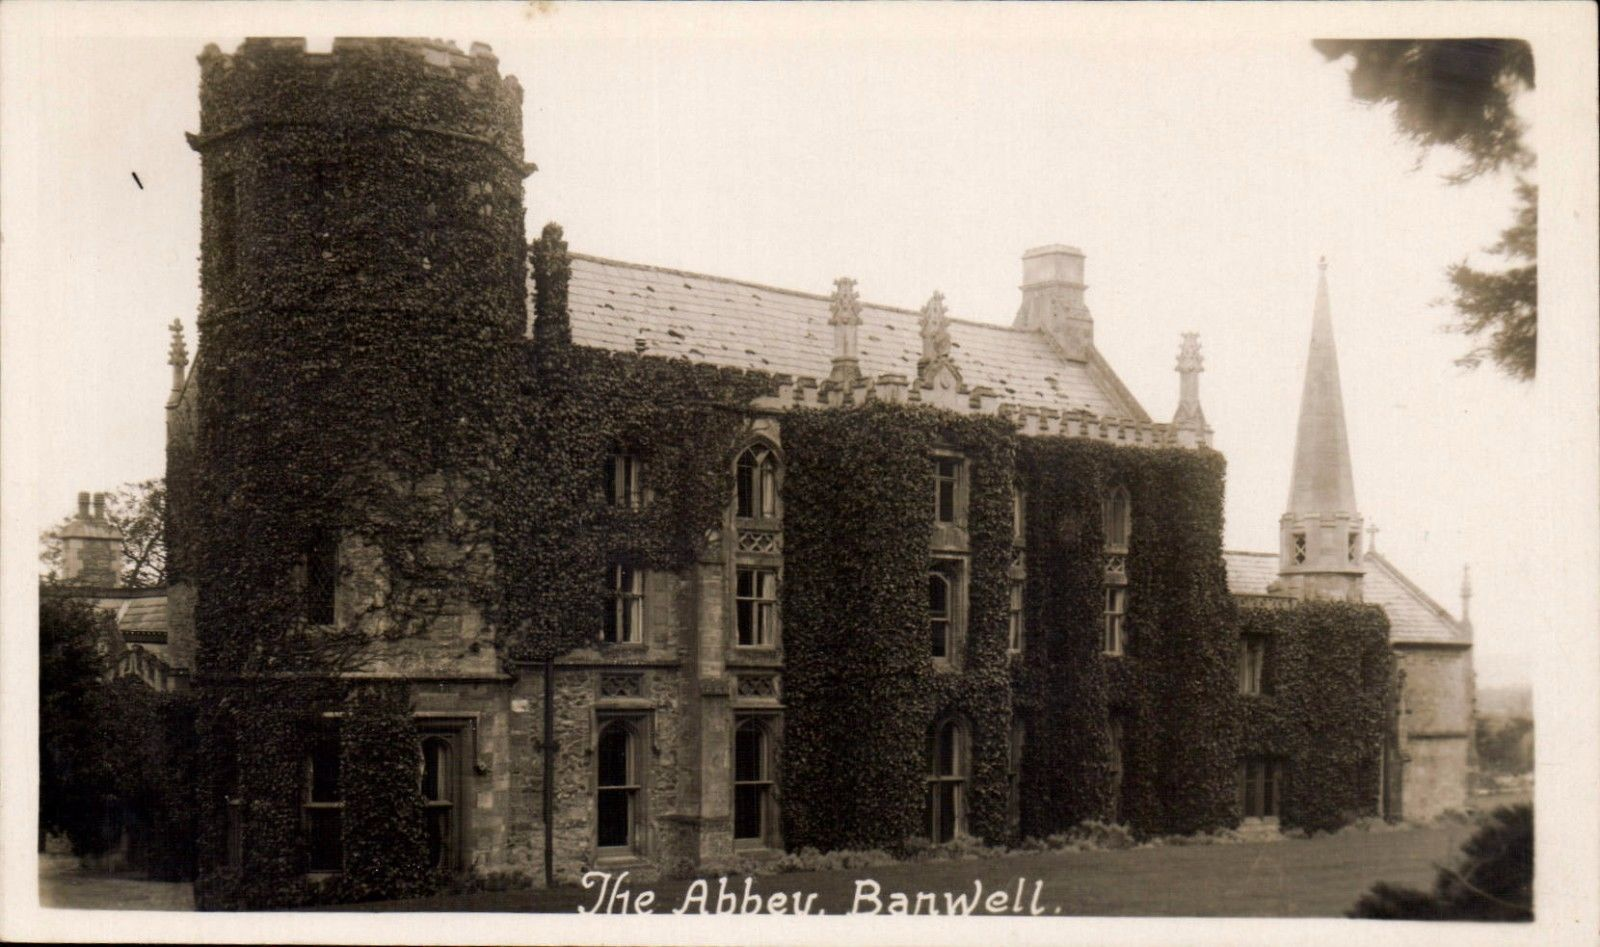 Banwell Abbey